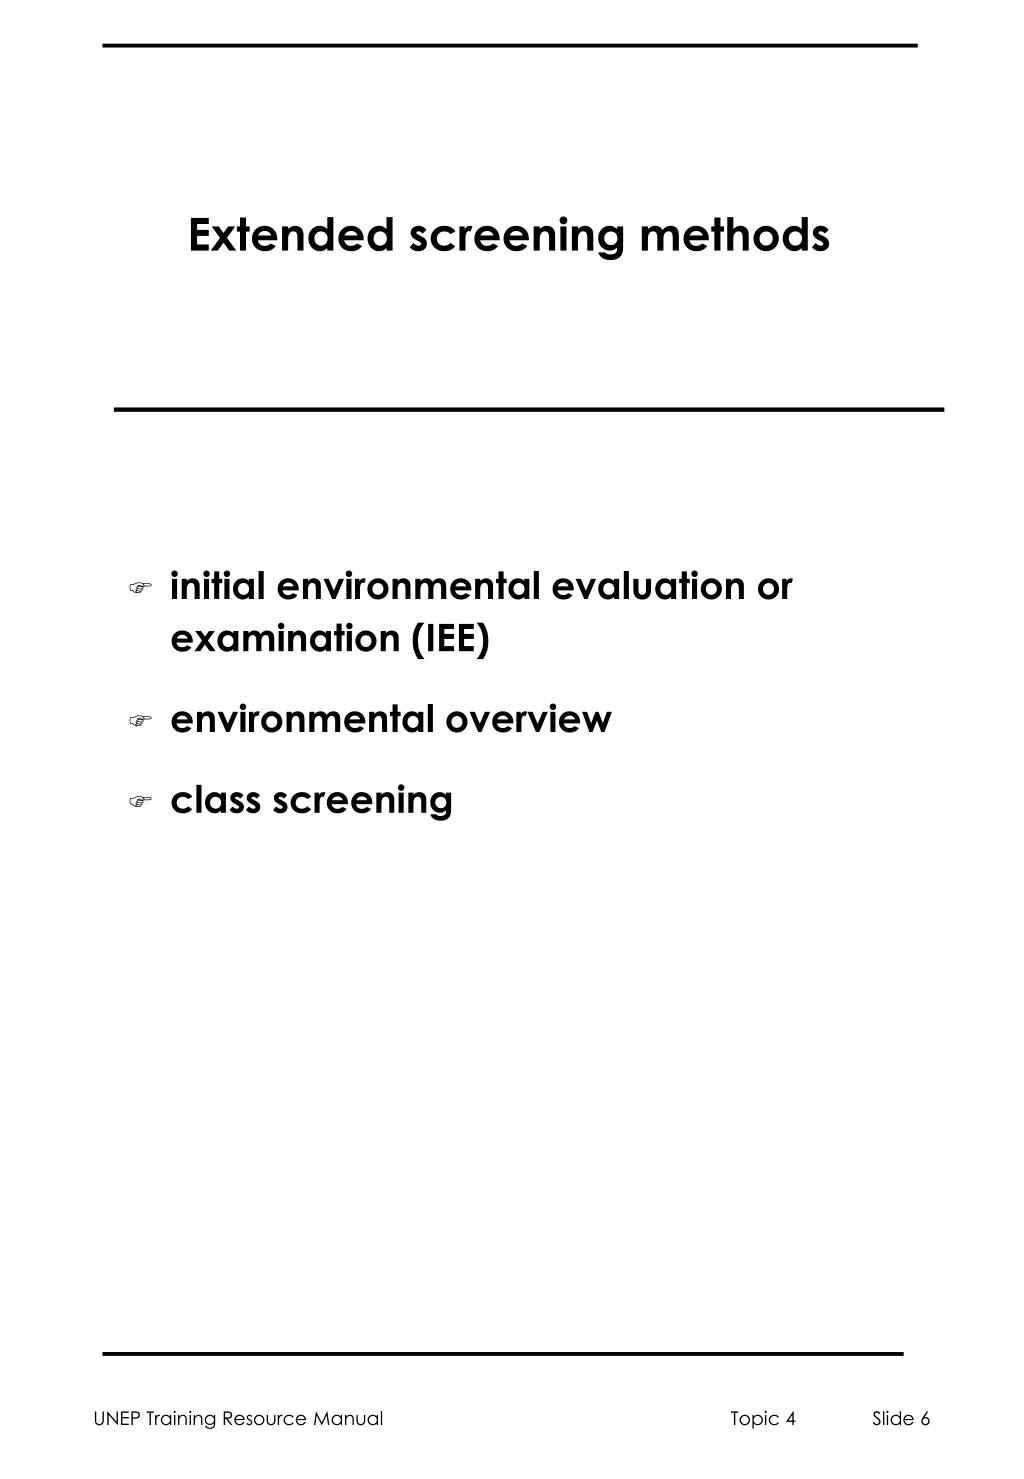 Extended screening methods